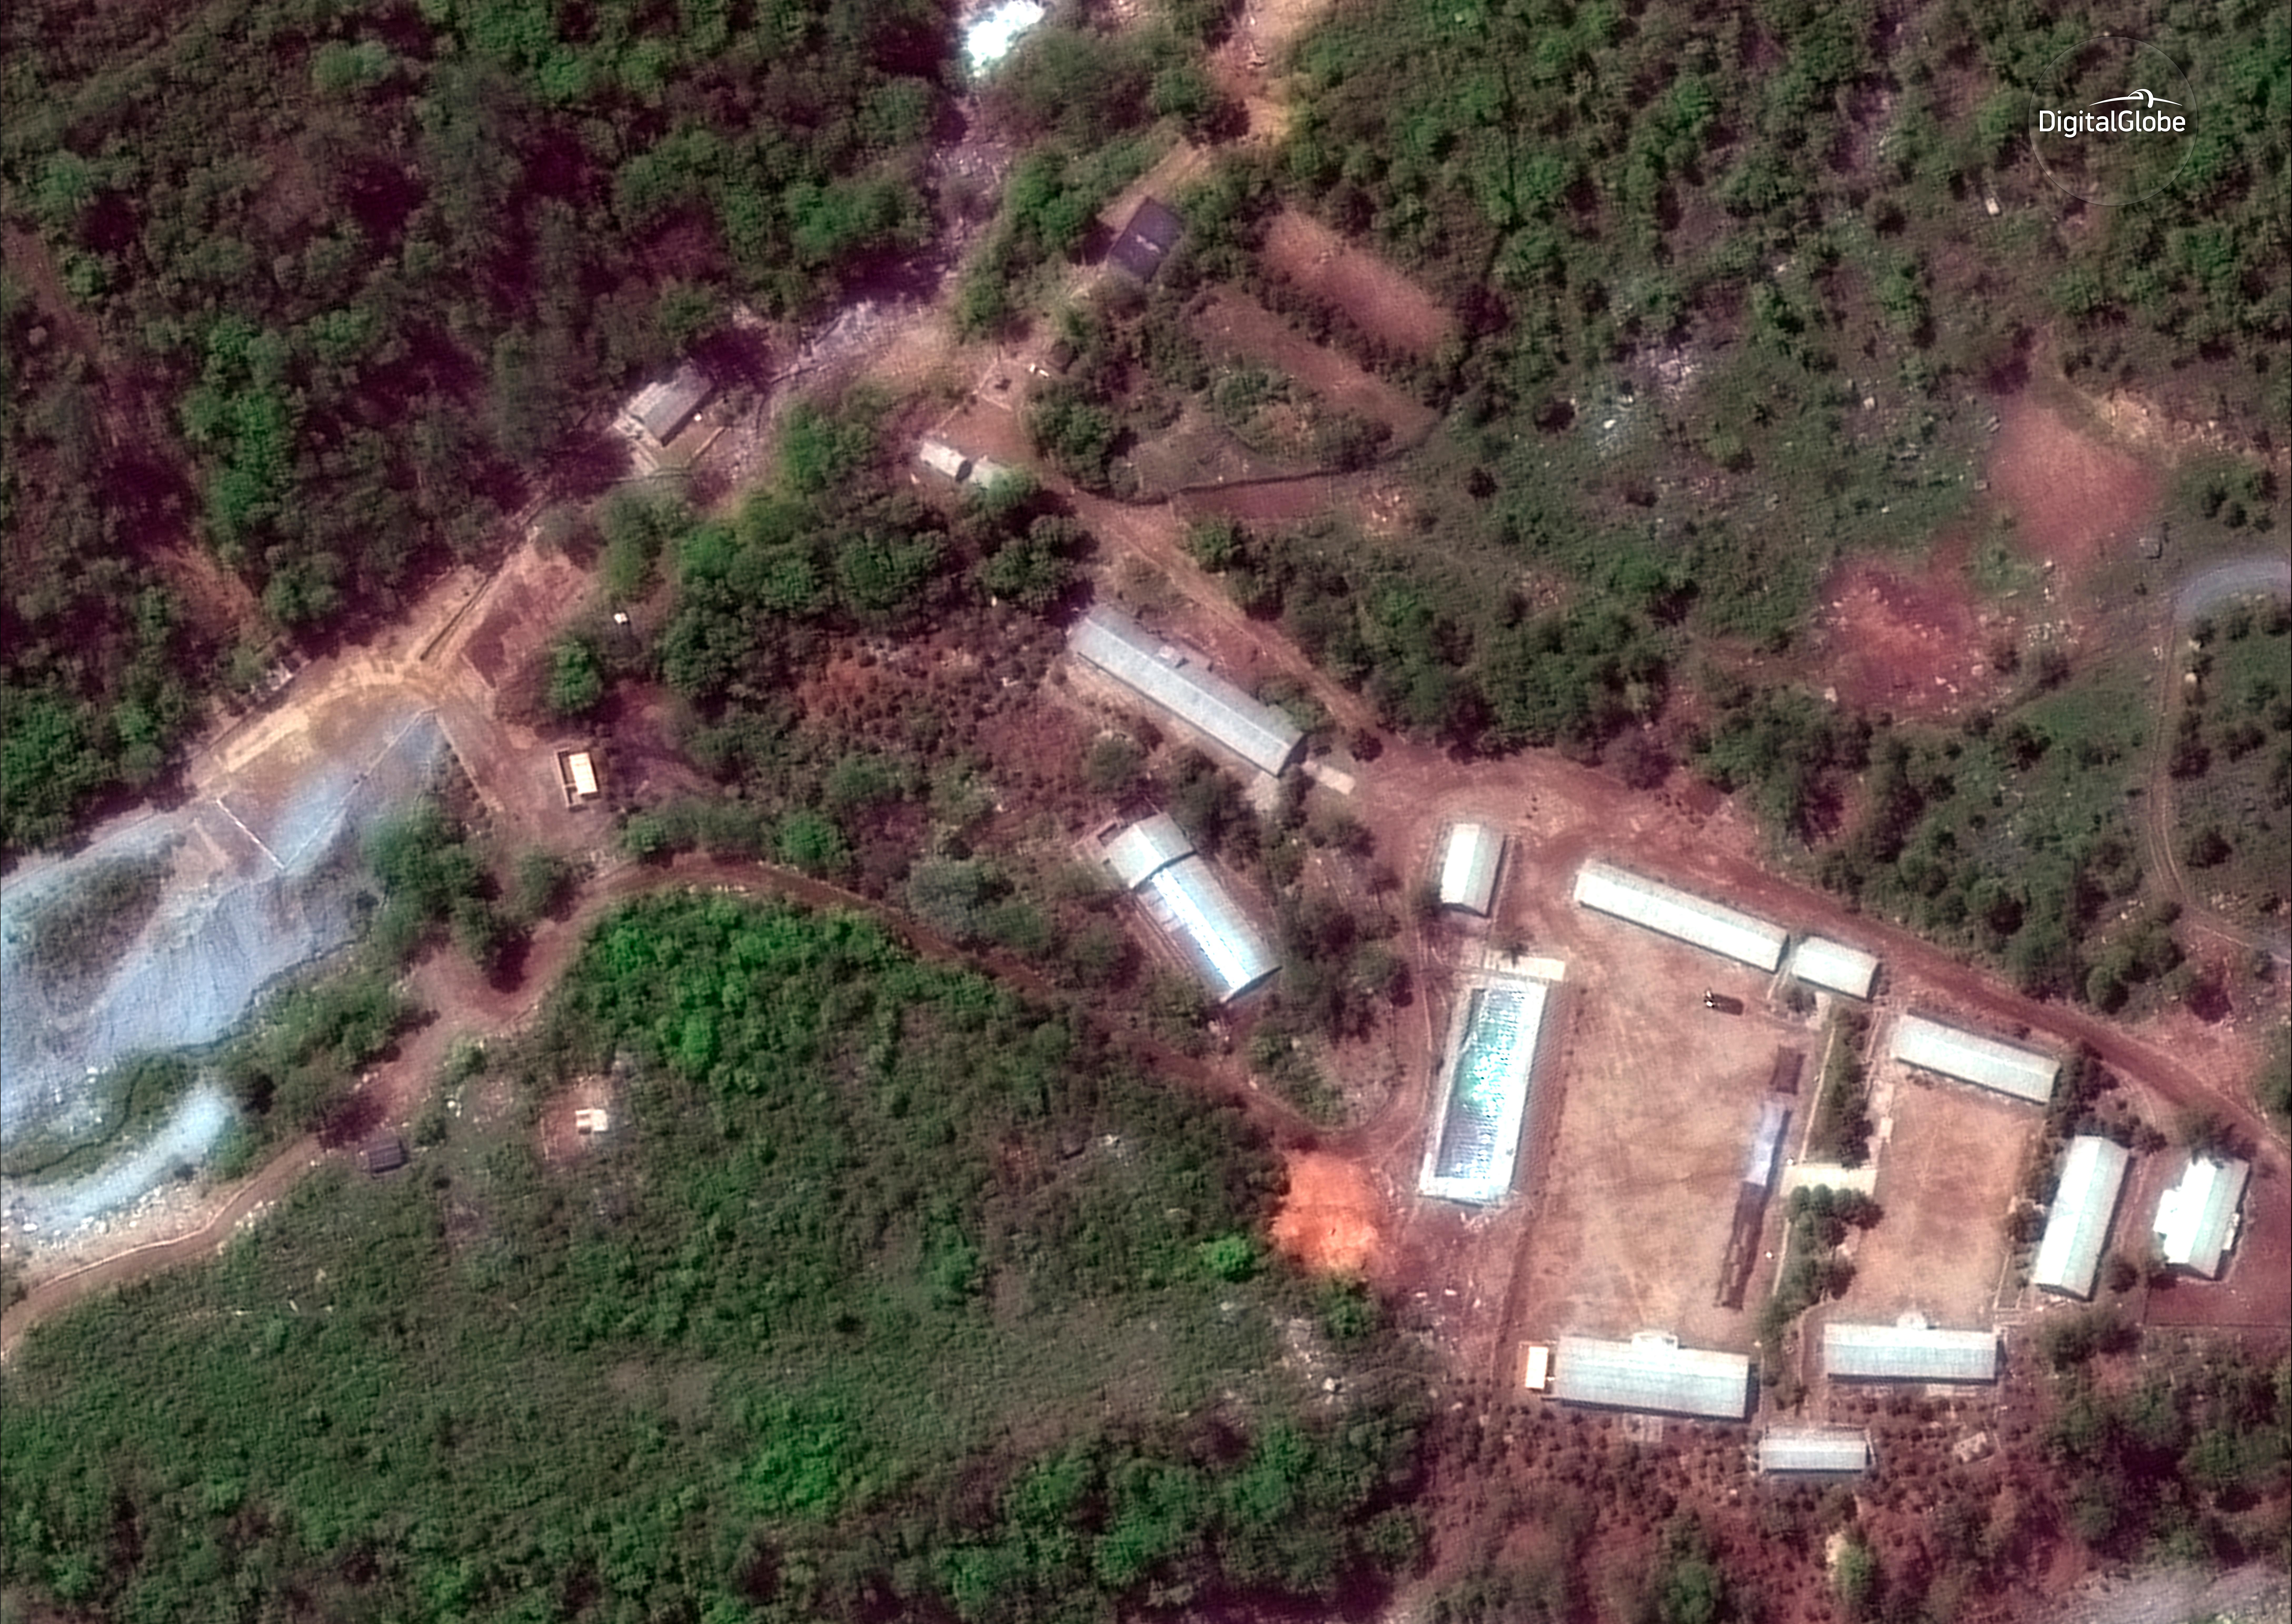 FILE - This Wednesday, May 23, 2018 satellite file image provided by DigitalGlobe, shows the Punggye-ri test site in North Korea. North Korea has carried out what it says is the demolition of its nuclear test site in the presence of foreign journalists. The demolition happened Thursday at the site deep in the mountains of the North's sparsely populated northeast. The planned closing was previously announced by leader Kim Jong Un ahead of his planned summit with U.S. President Donald Trump next month. (DigitalGlobe via AP, File)